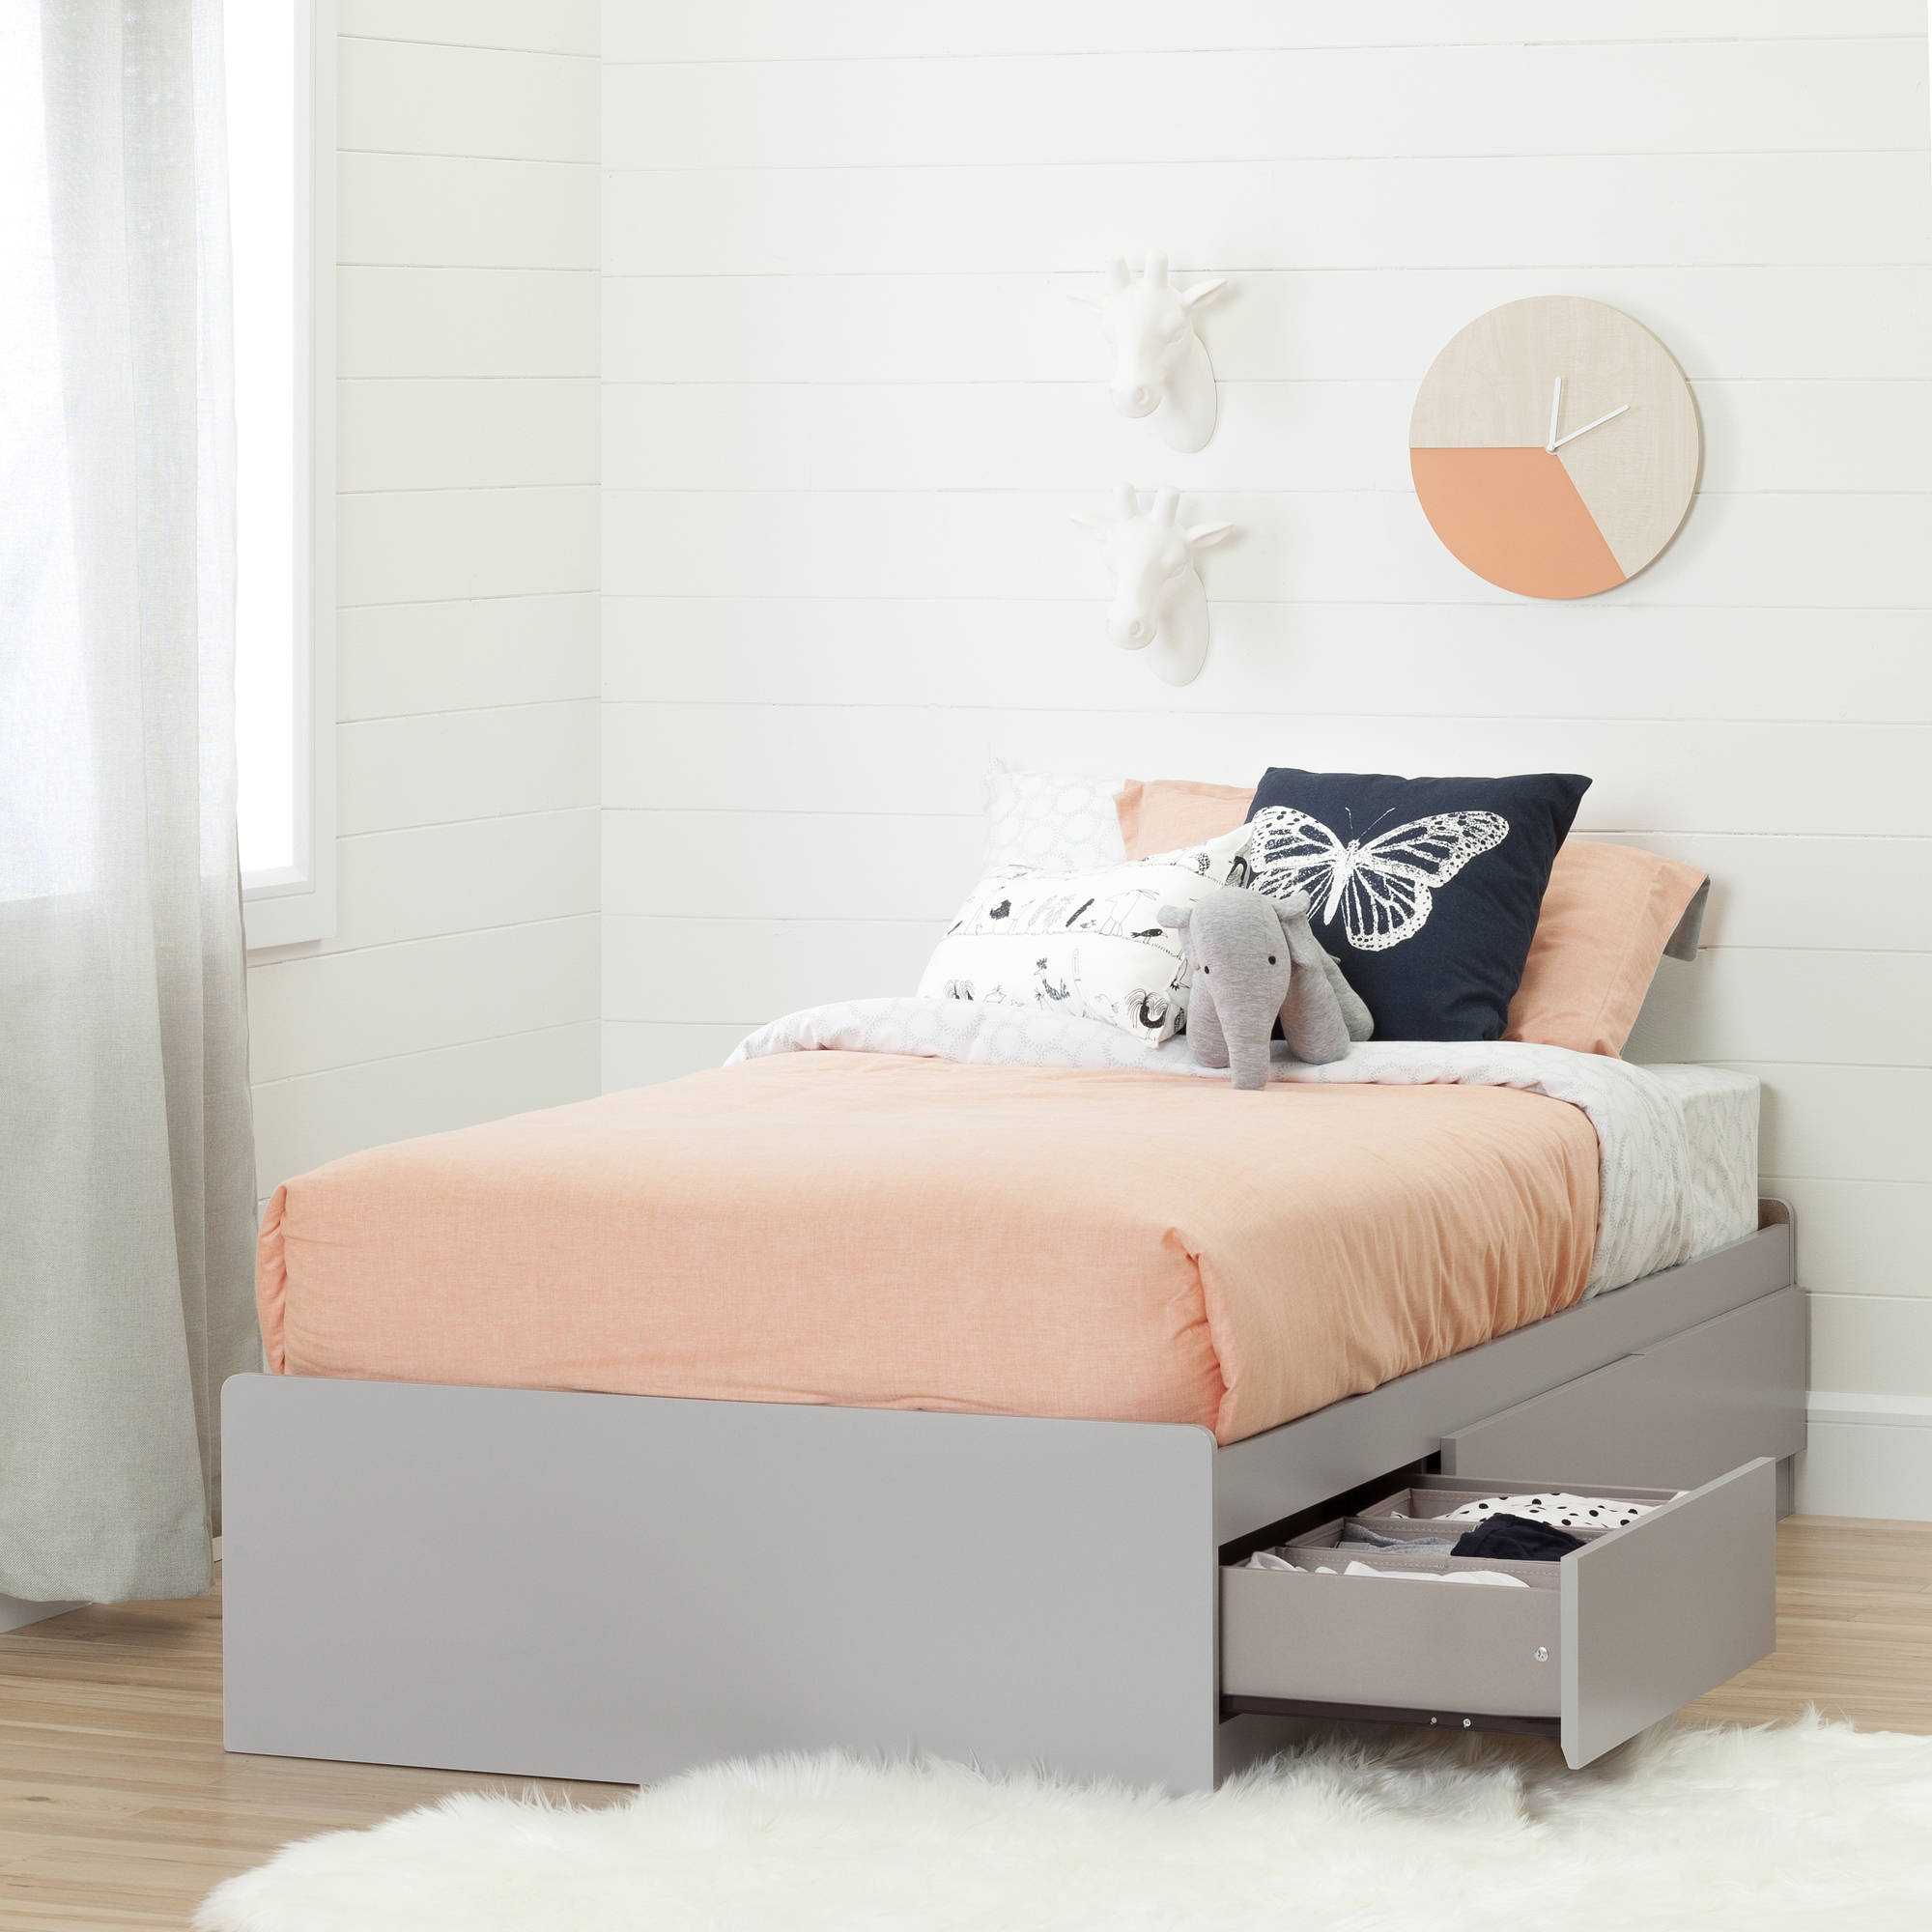 South Shore Cookie Twin Mates Bed with 3 Drawers, Soft Gray by South Shore